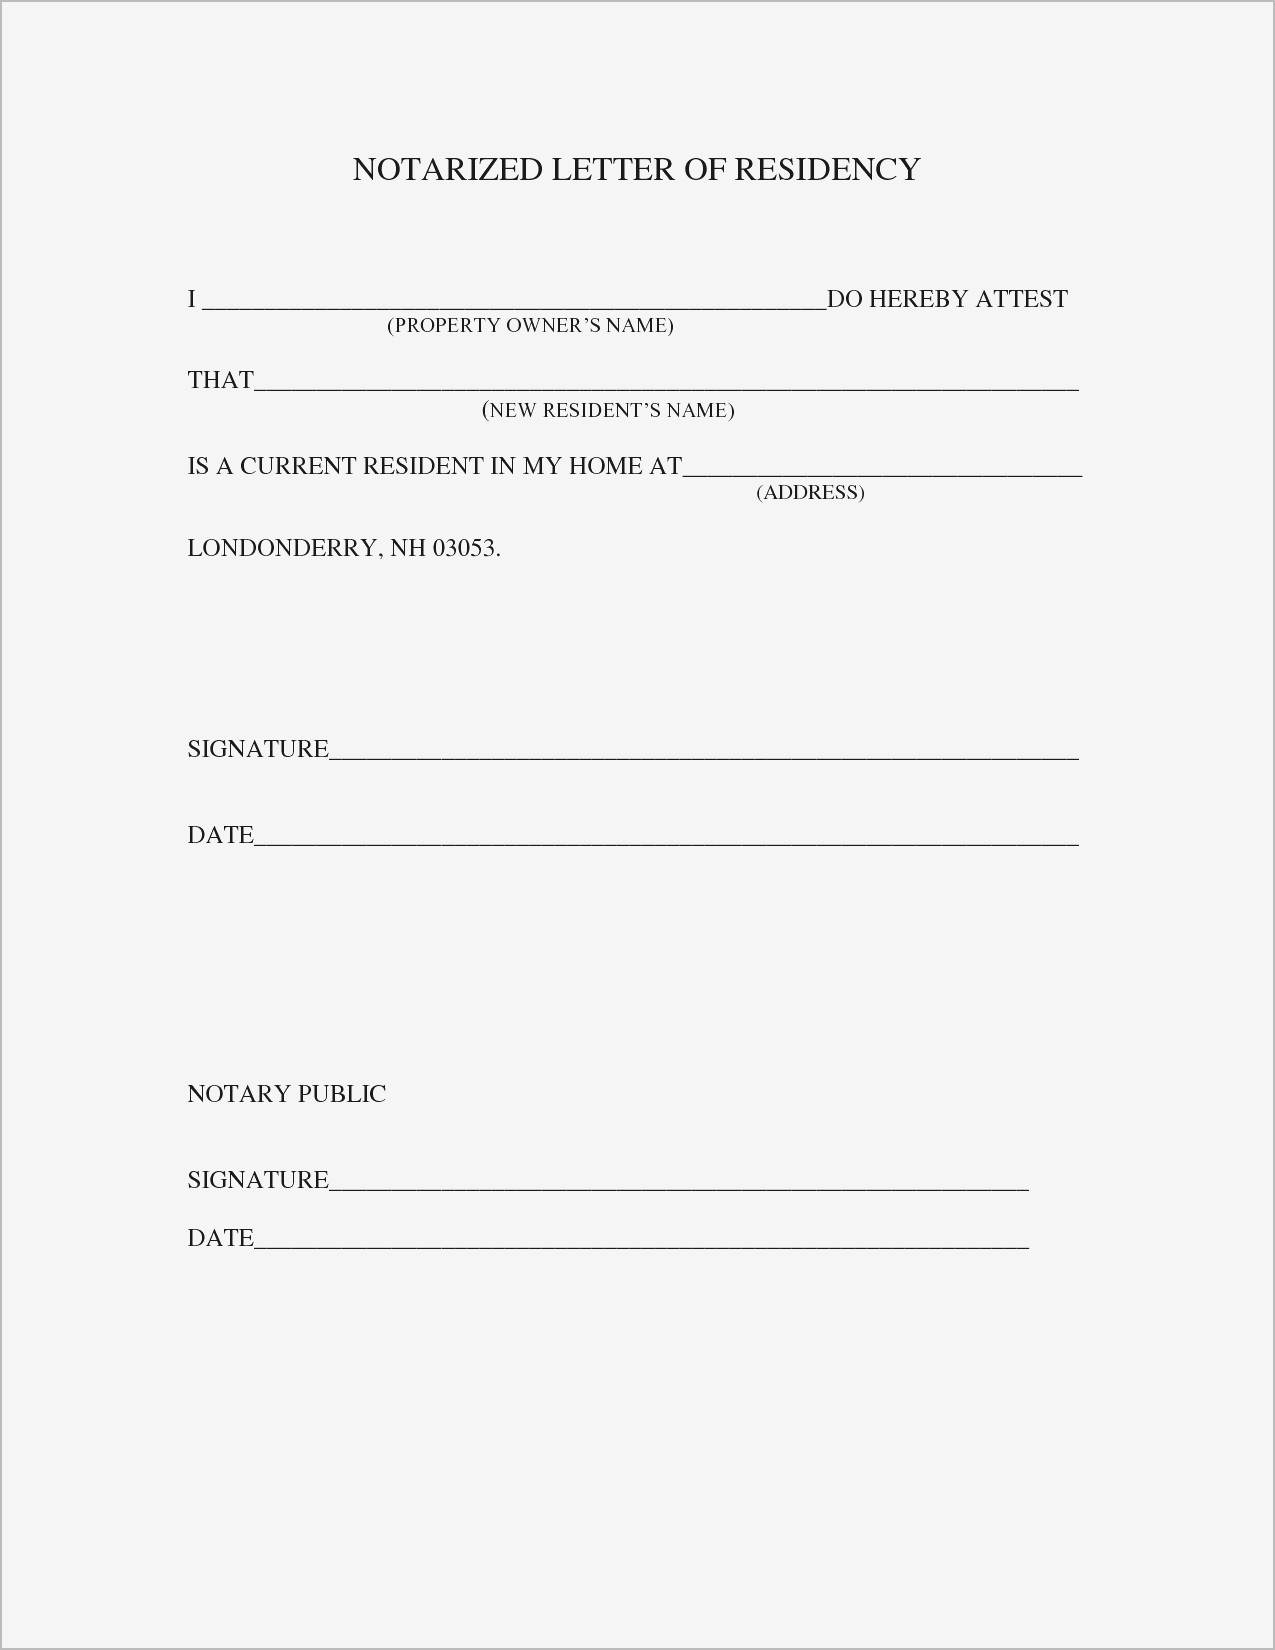 Notary Letter Template - Printable Notarized Letter Residency Template Samples